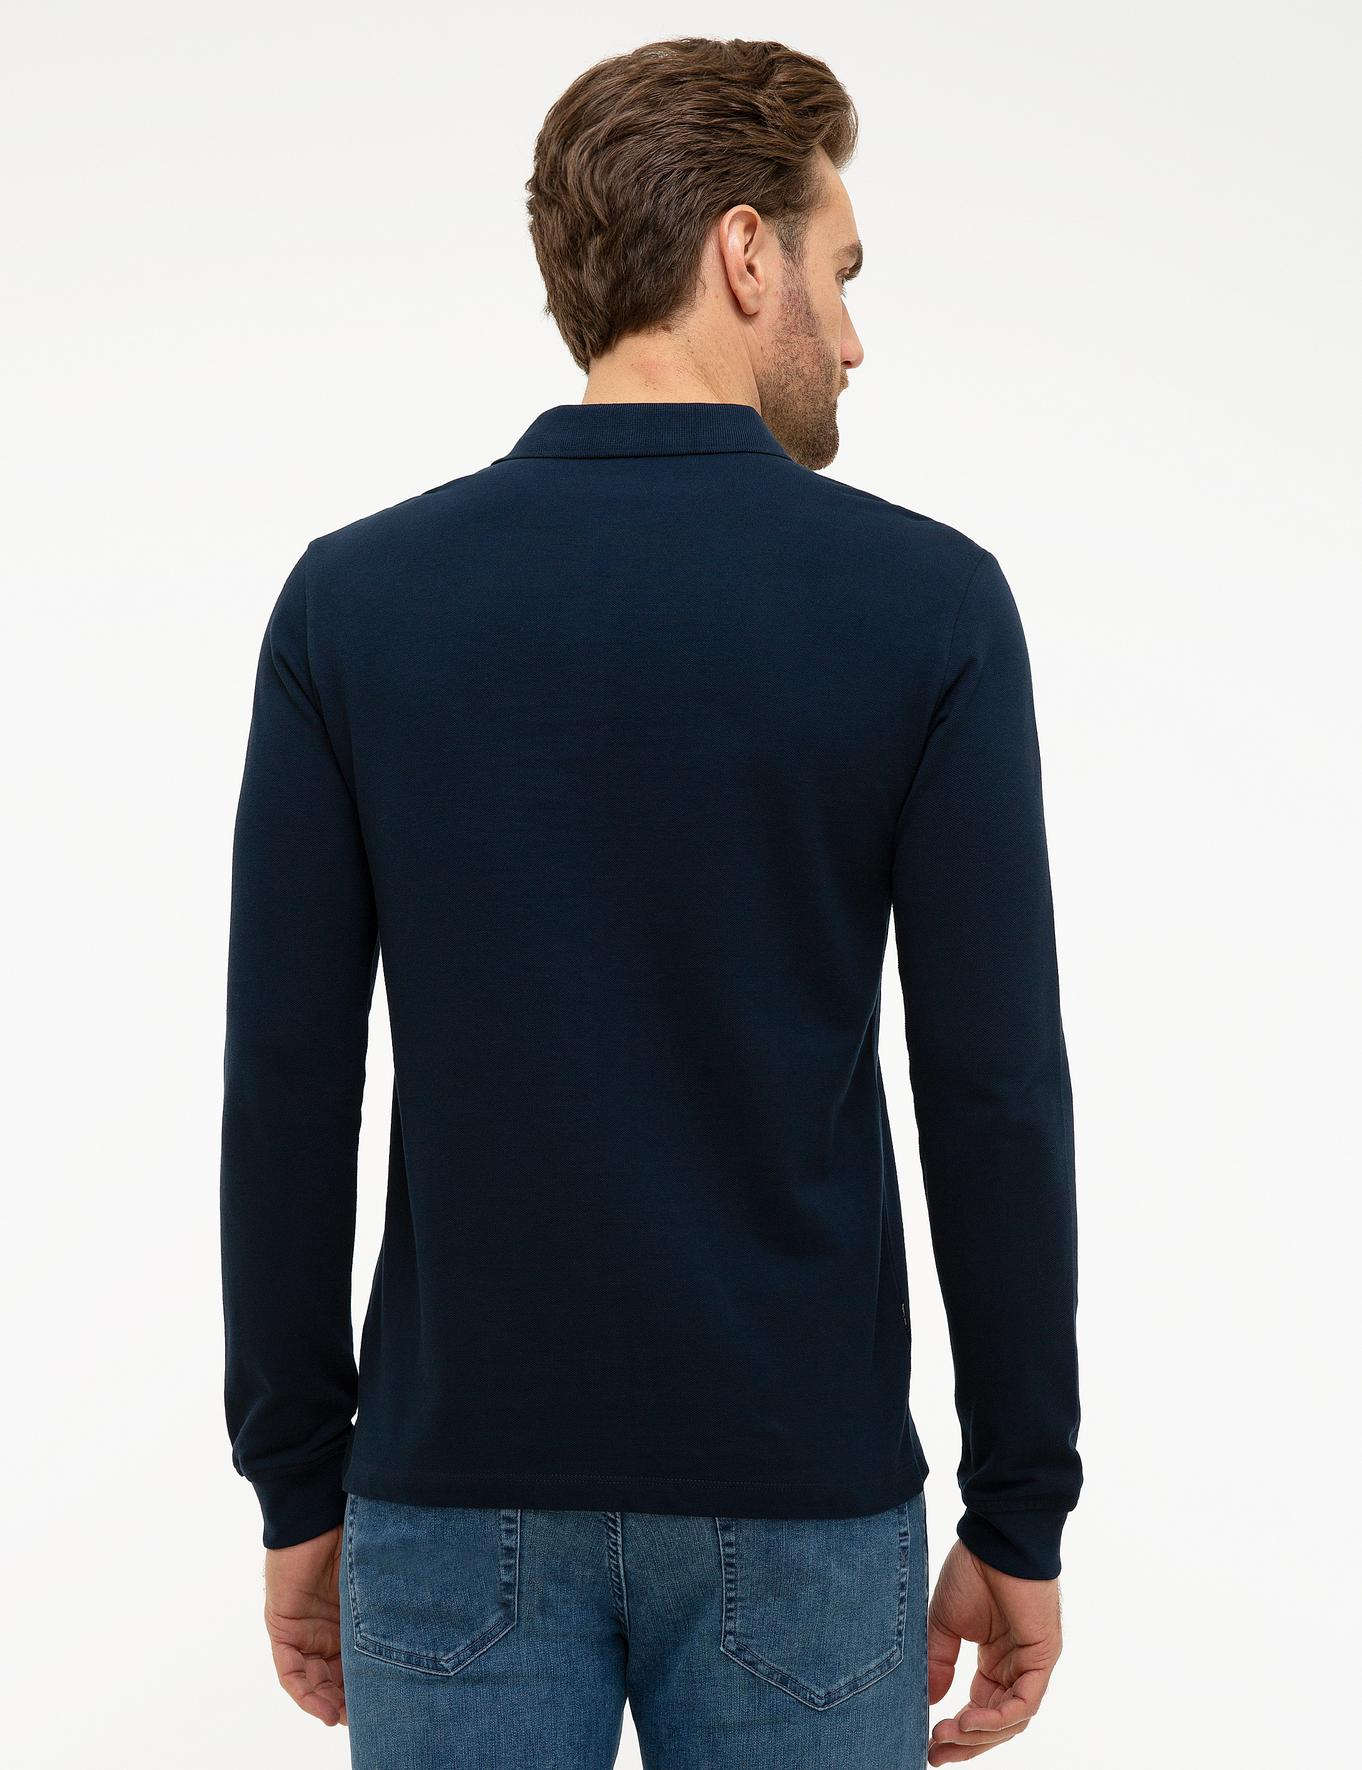 Lacivert Slim Fit Sweatshirt